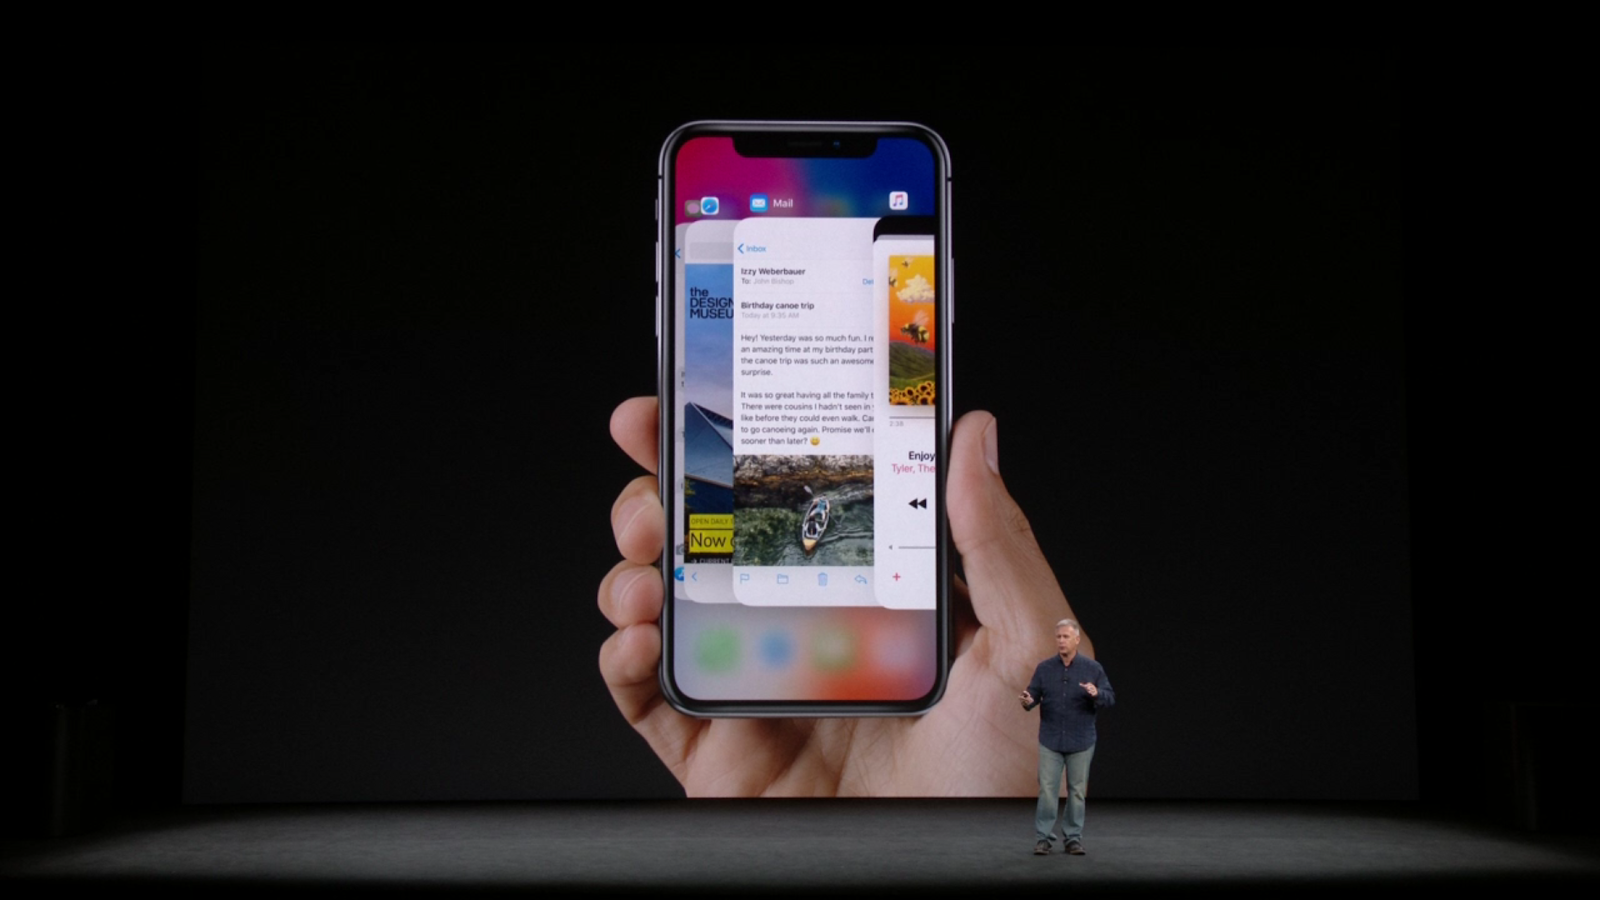 IMG_4119 Check out the Stunning iPhone X (iPhone 10) images Apple